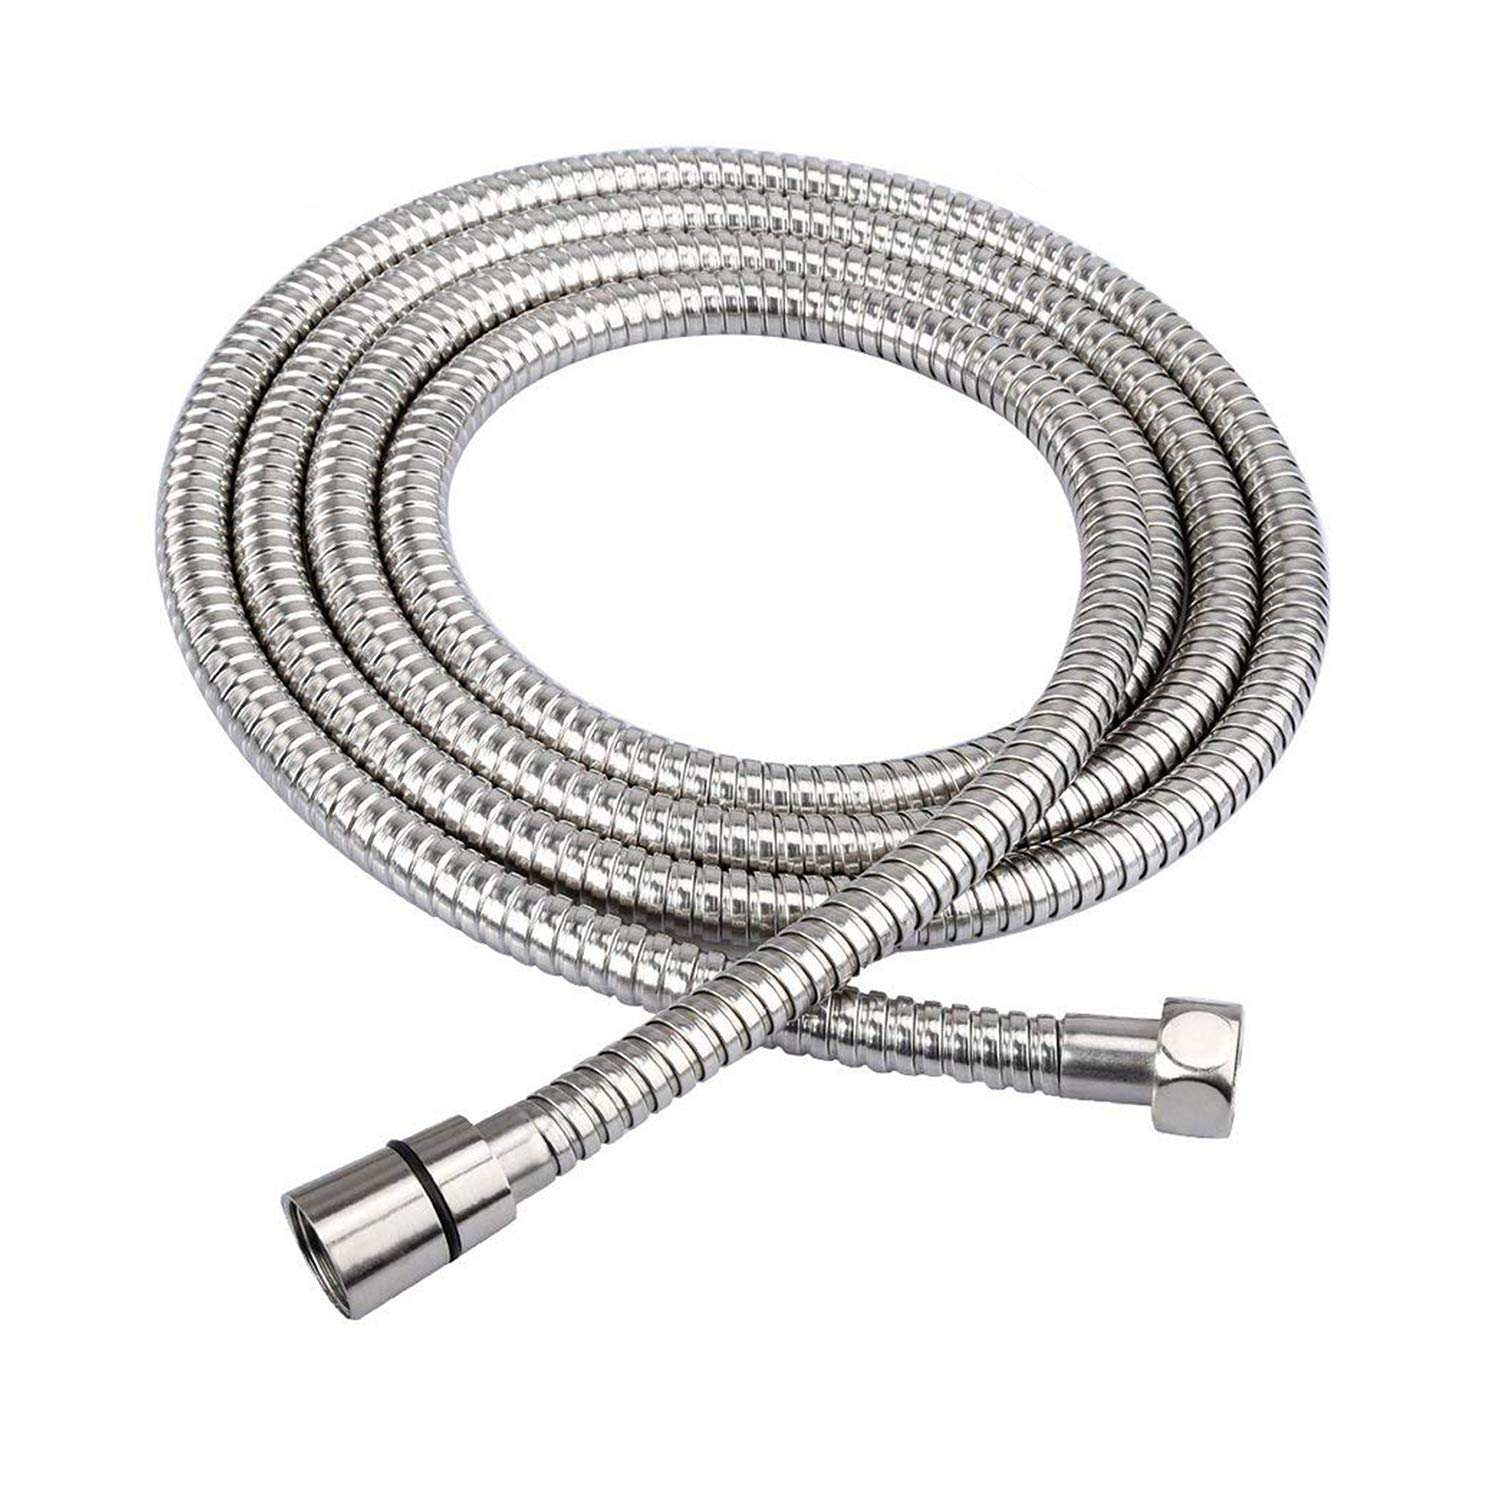 Samodra Shower Hose, 98 Inches Extra Long Stainless Steel Handheld Shower Head Replacement Hose Extension 360 Degree Swivel with Solid Brass Connector